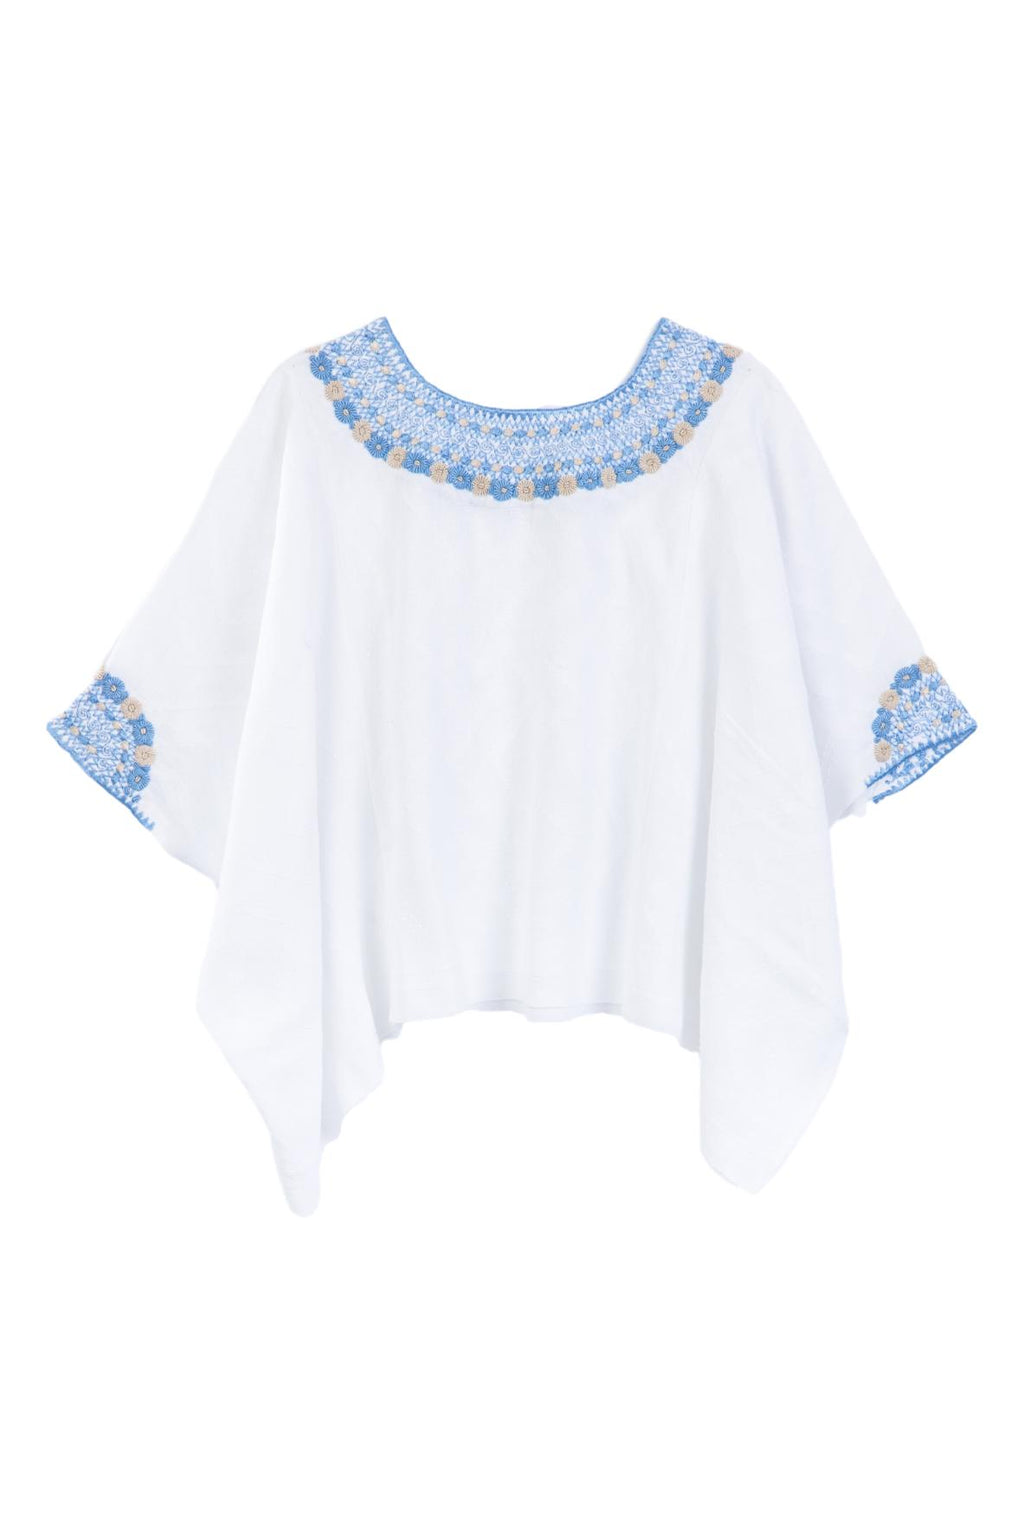 Evelyn Guatemalan Blouse - French Blue and Taupe